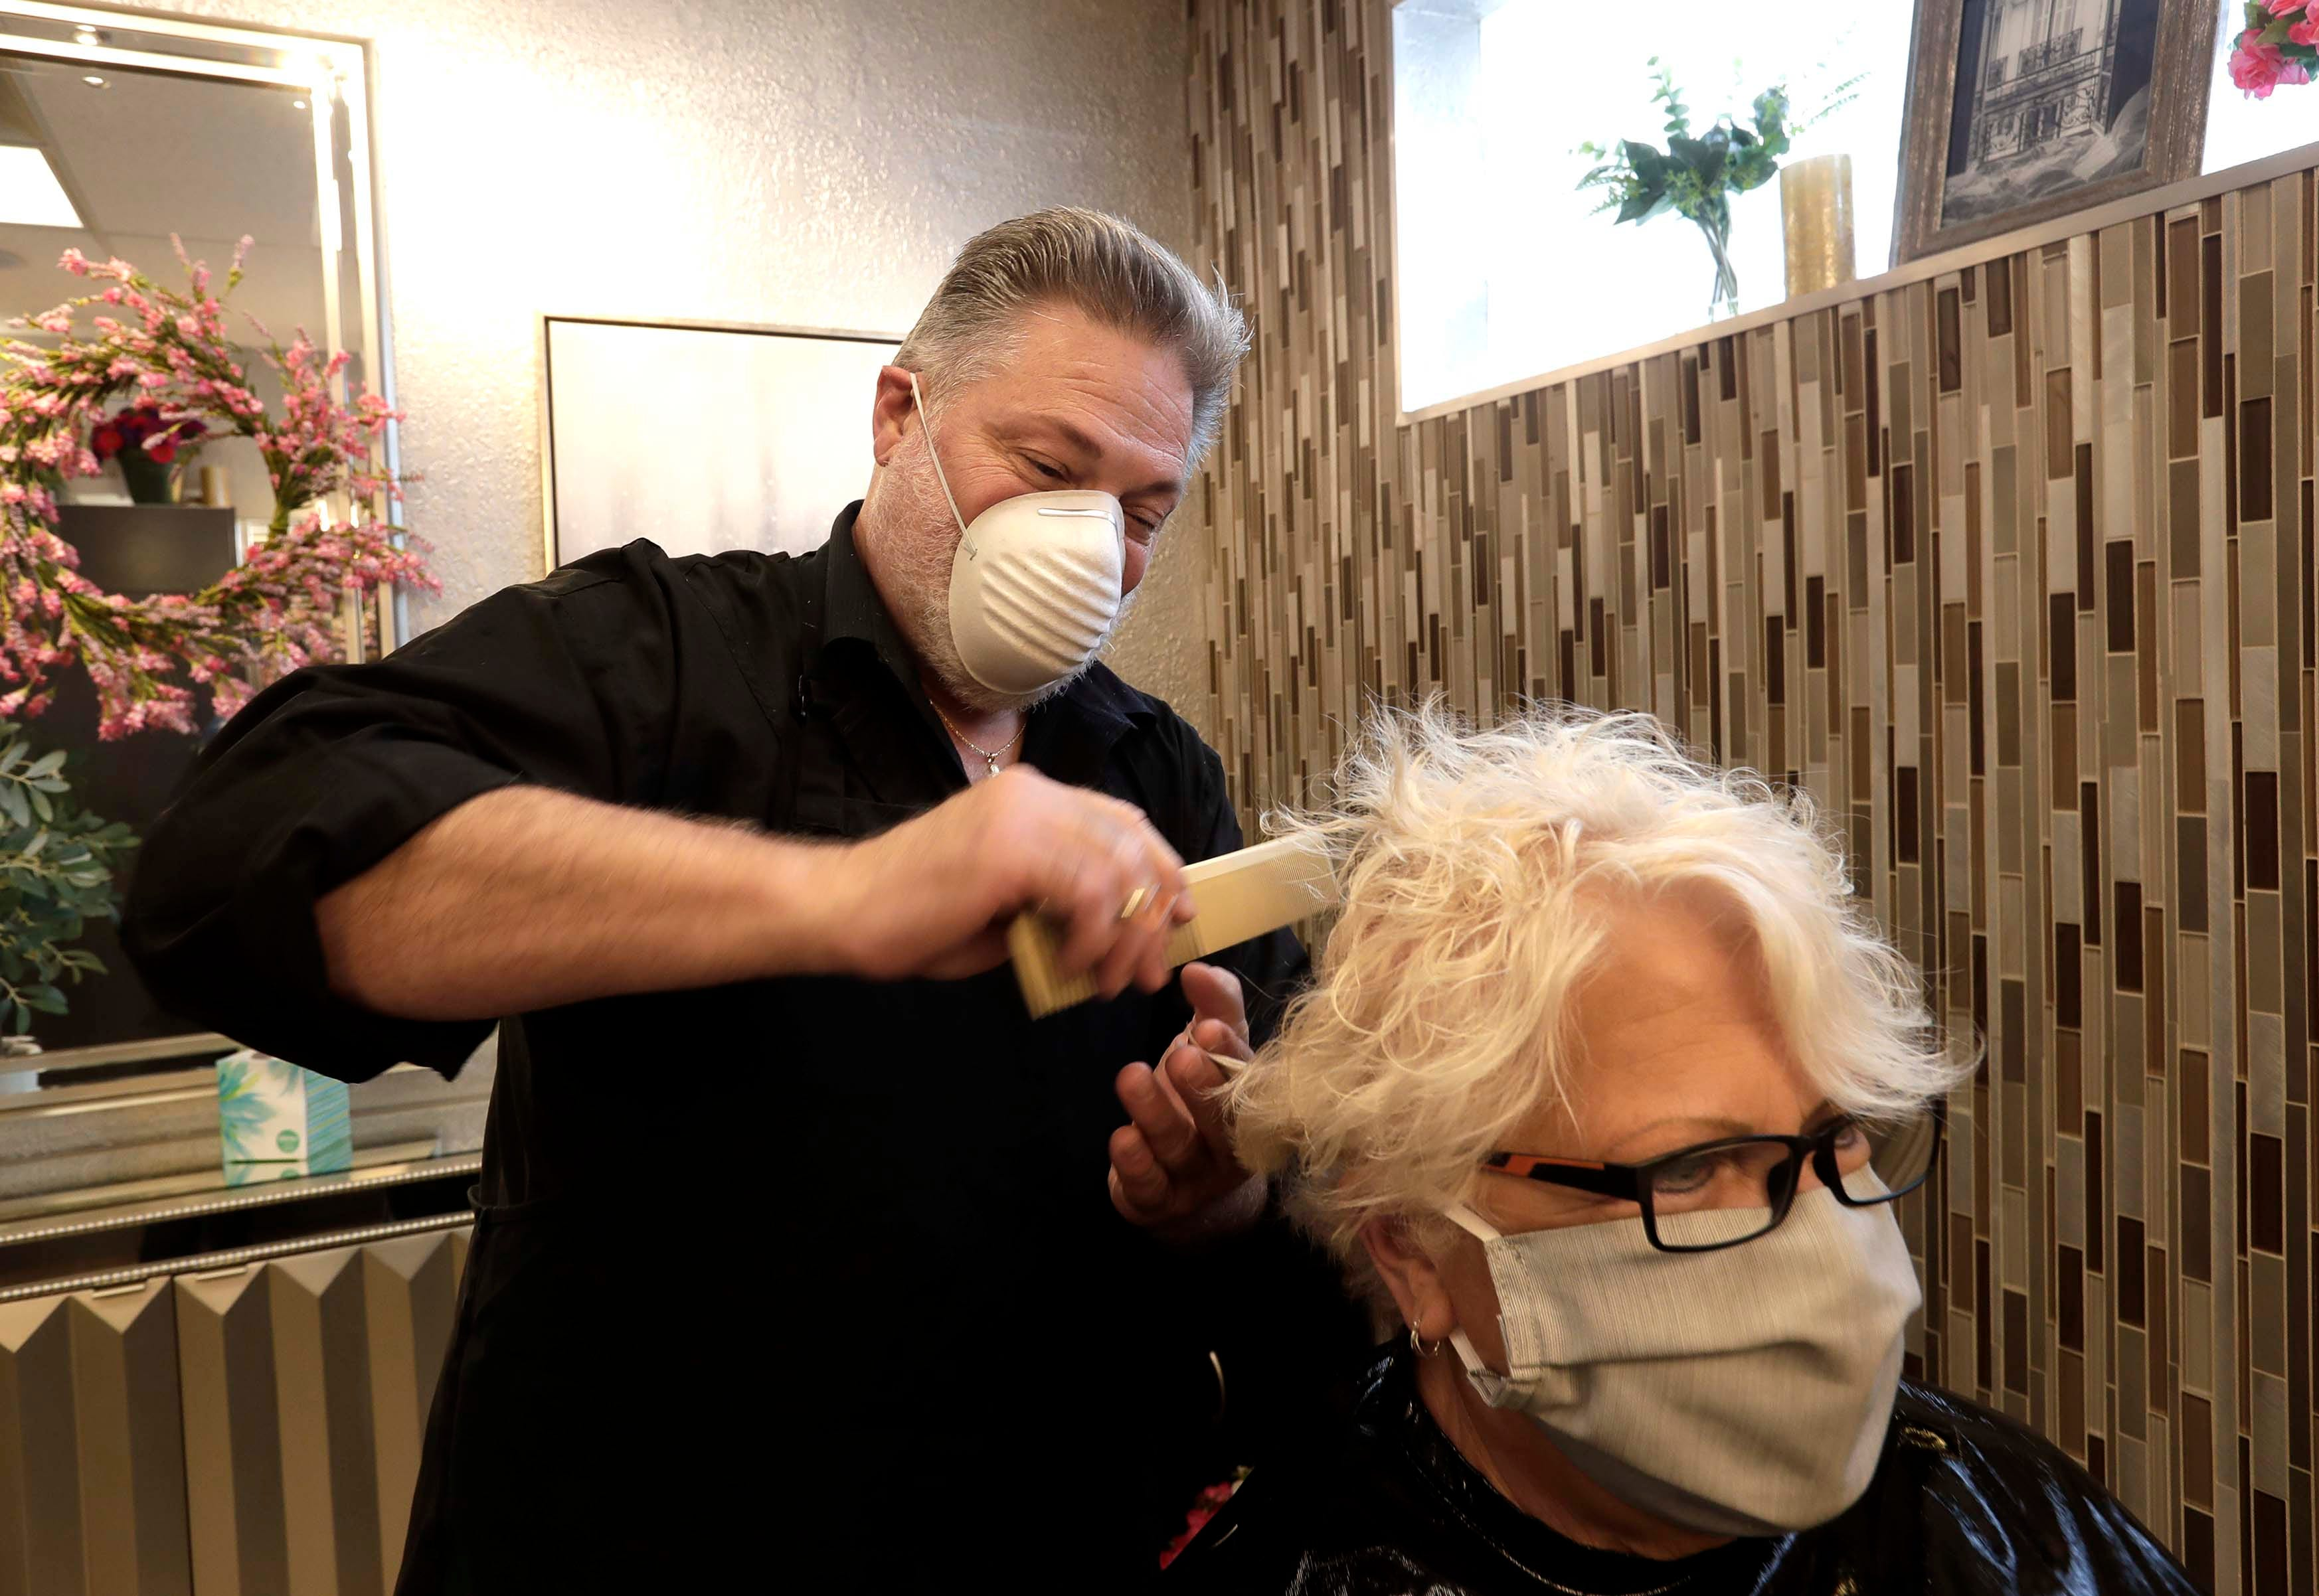 Hair Salons Spas And Gyms Reopen Around Wisconsin During Coronavirus